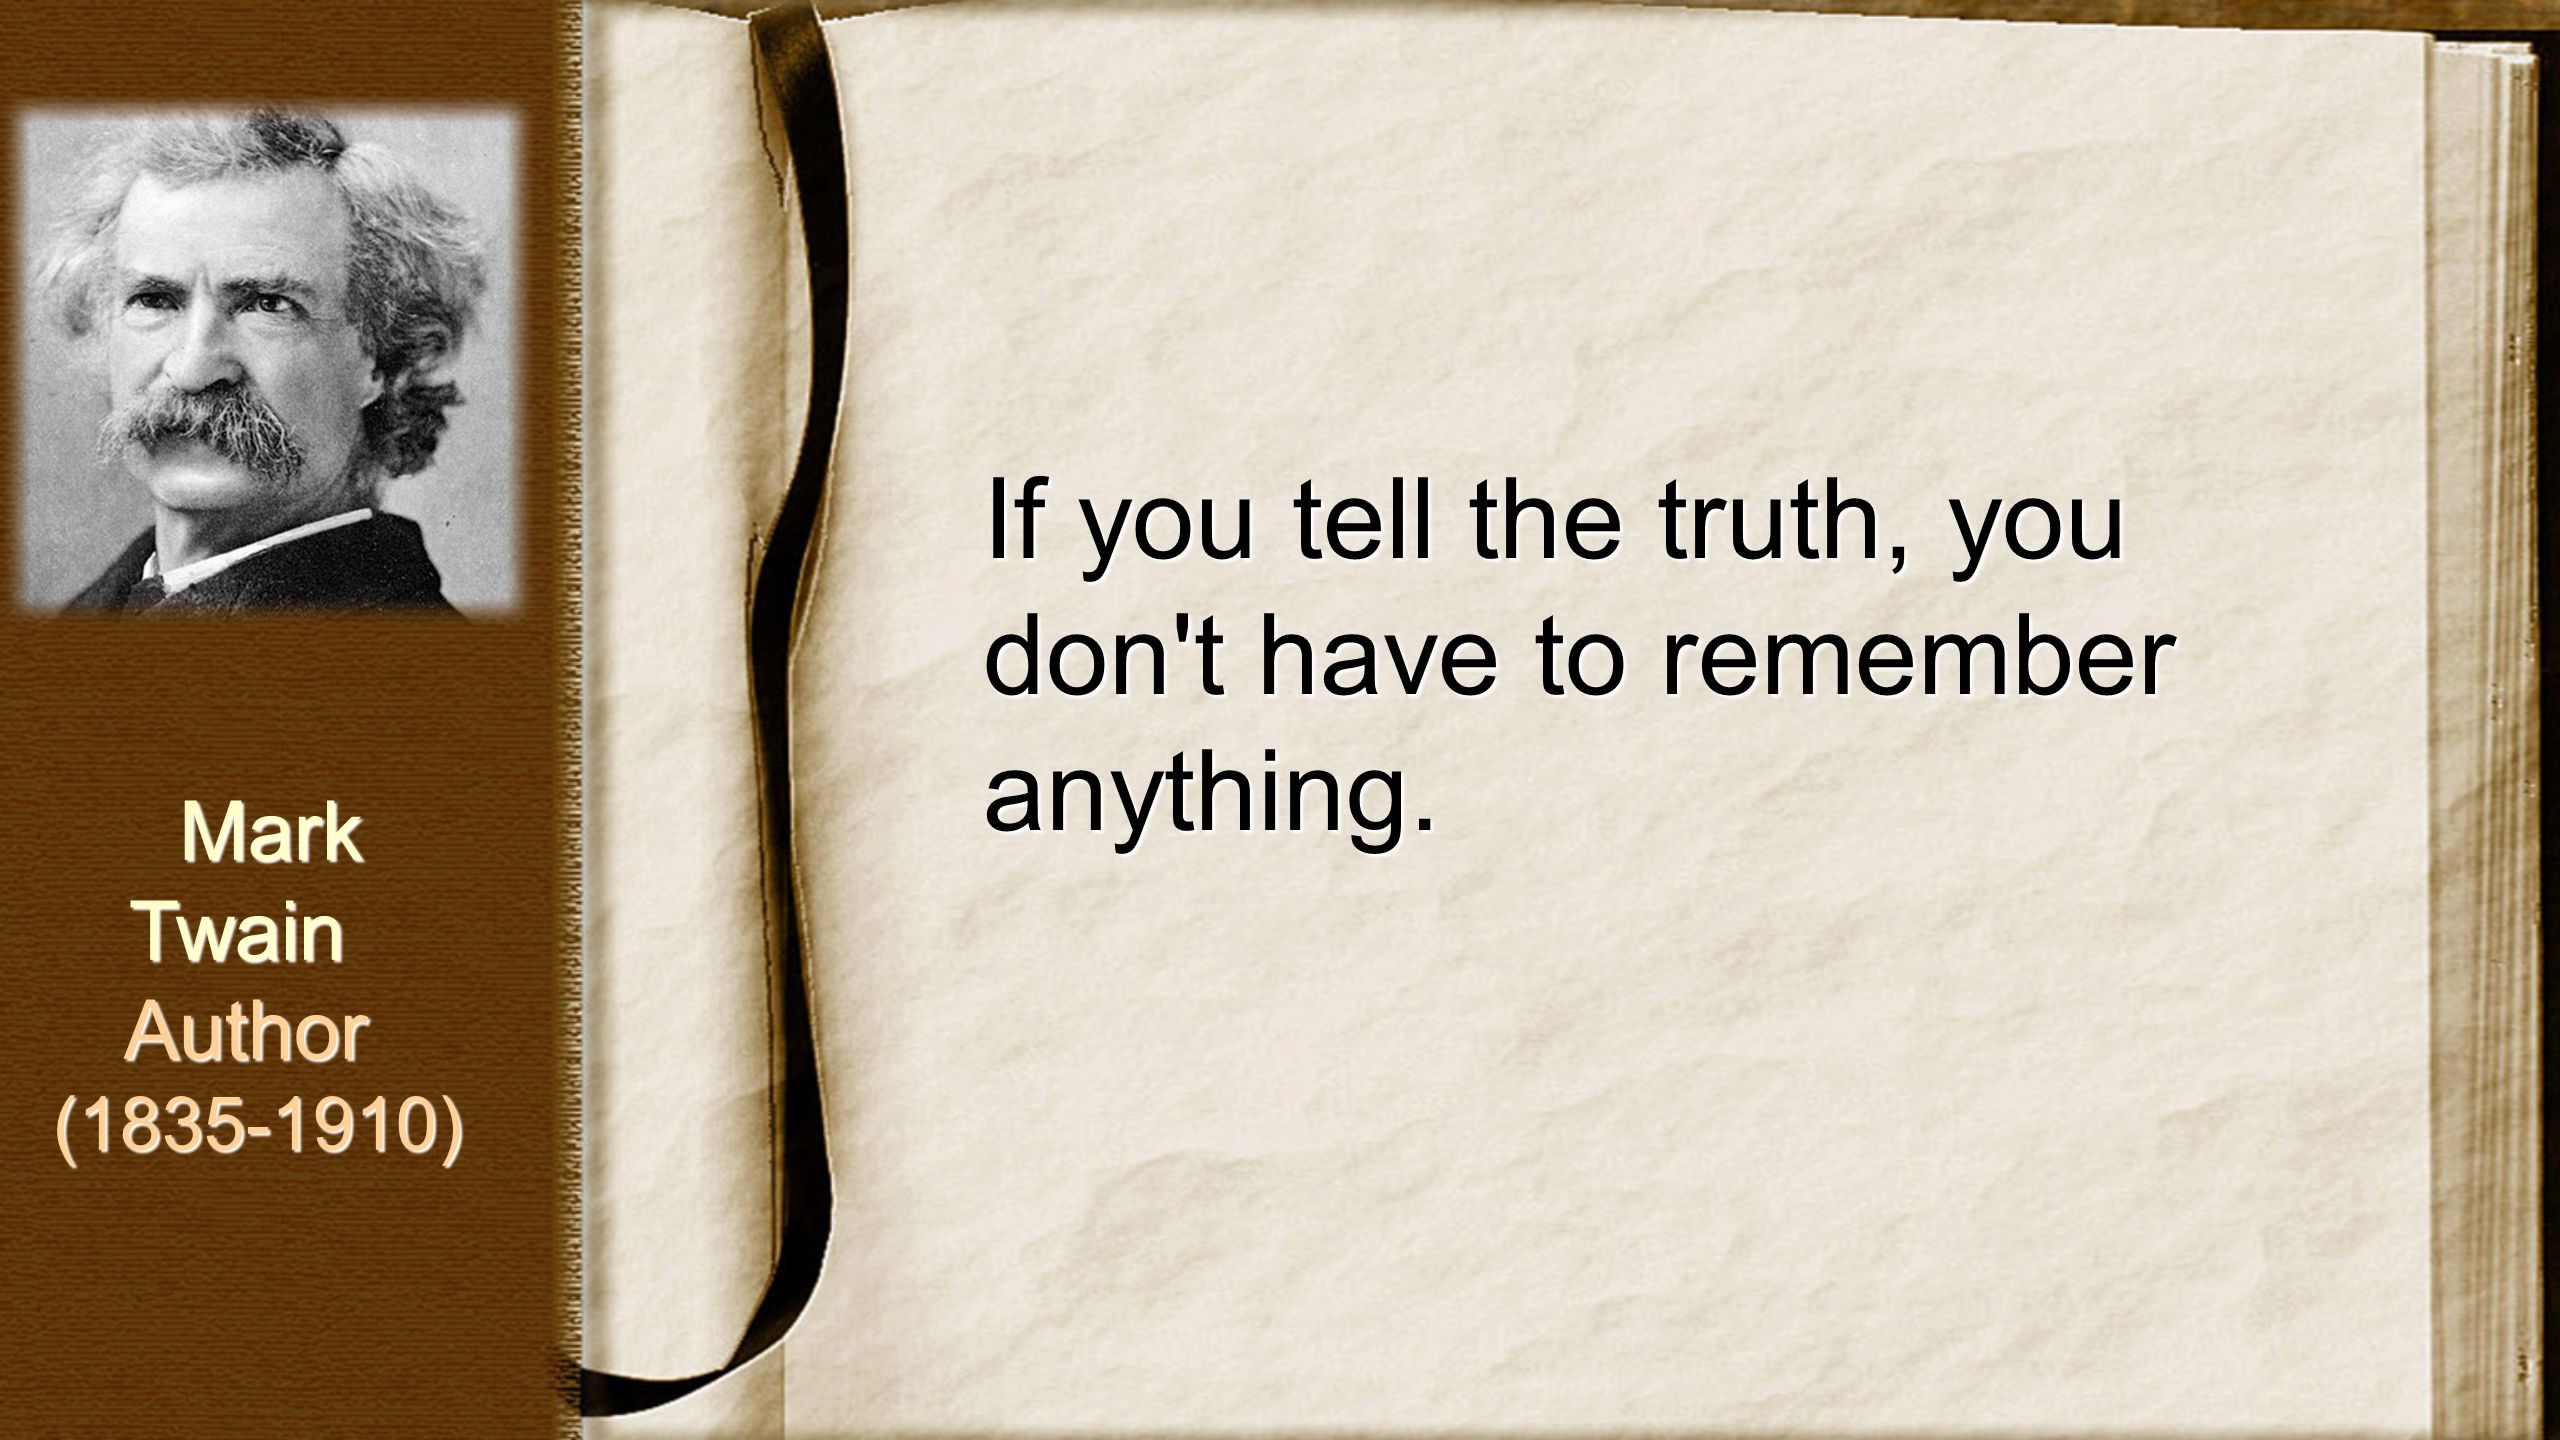 If you tell the truth, you don t have to remember anything.